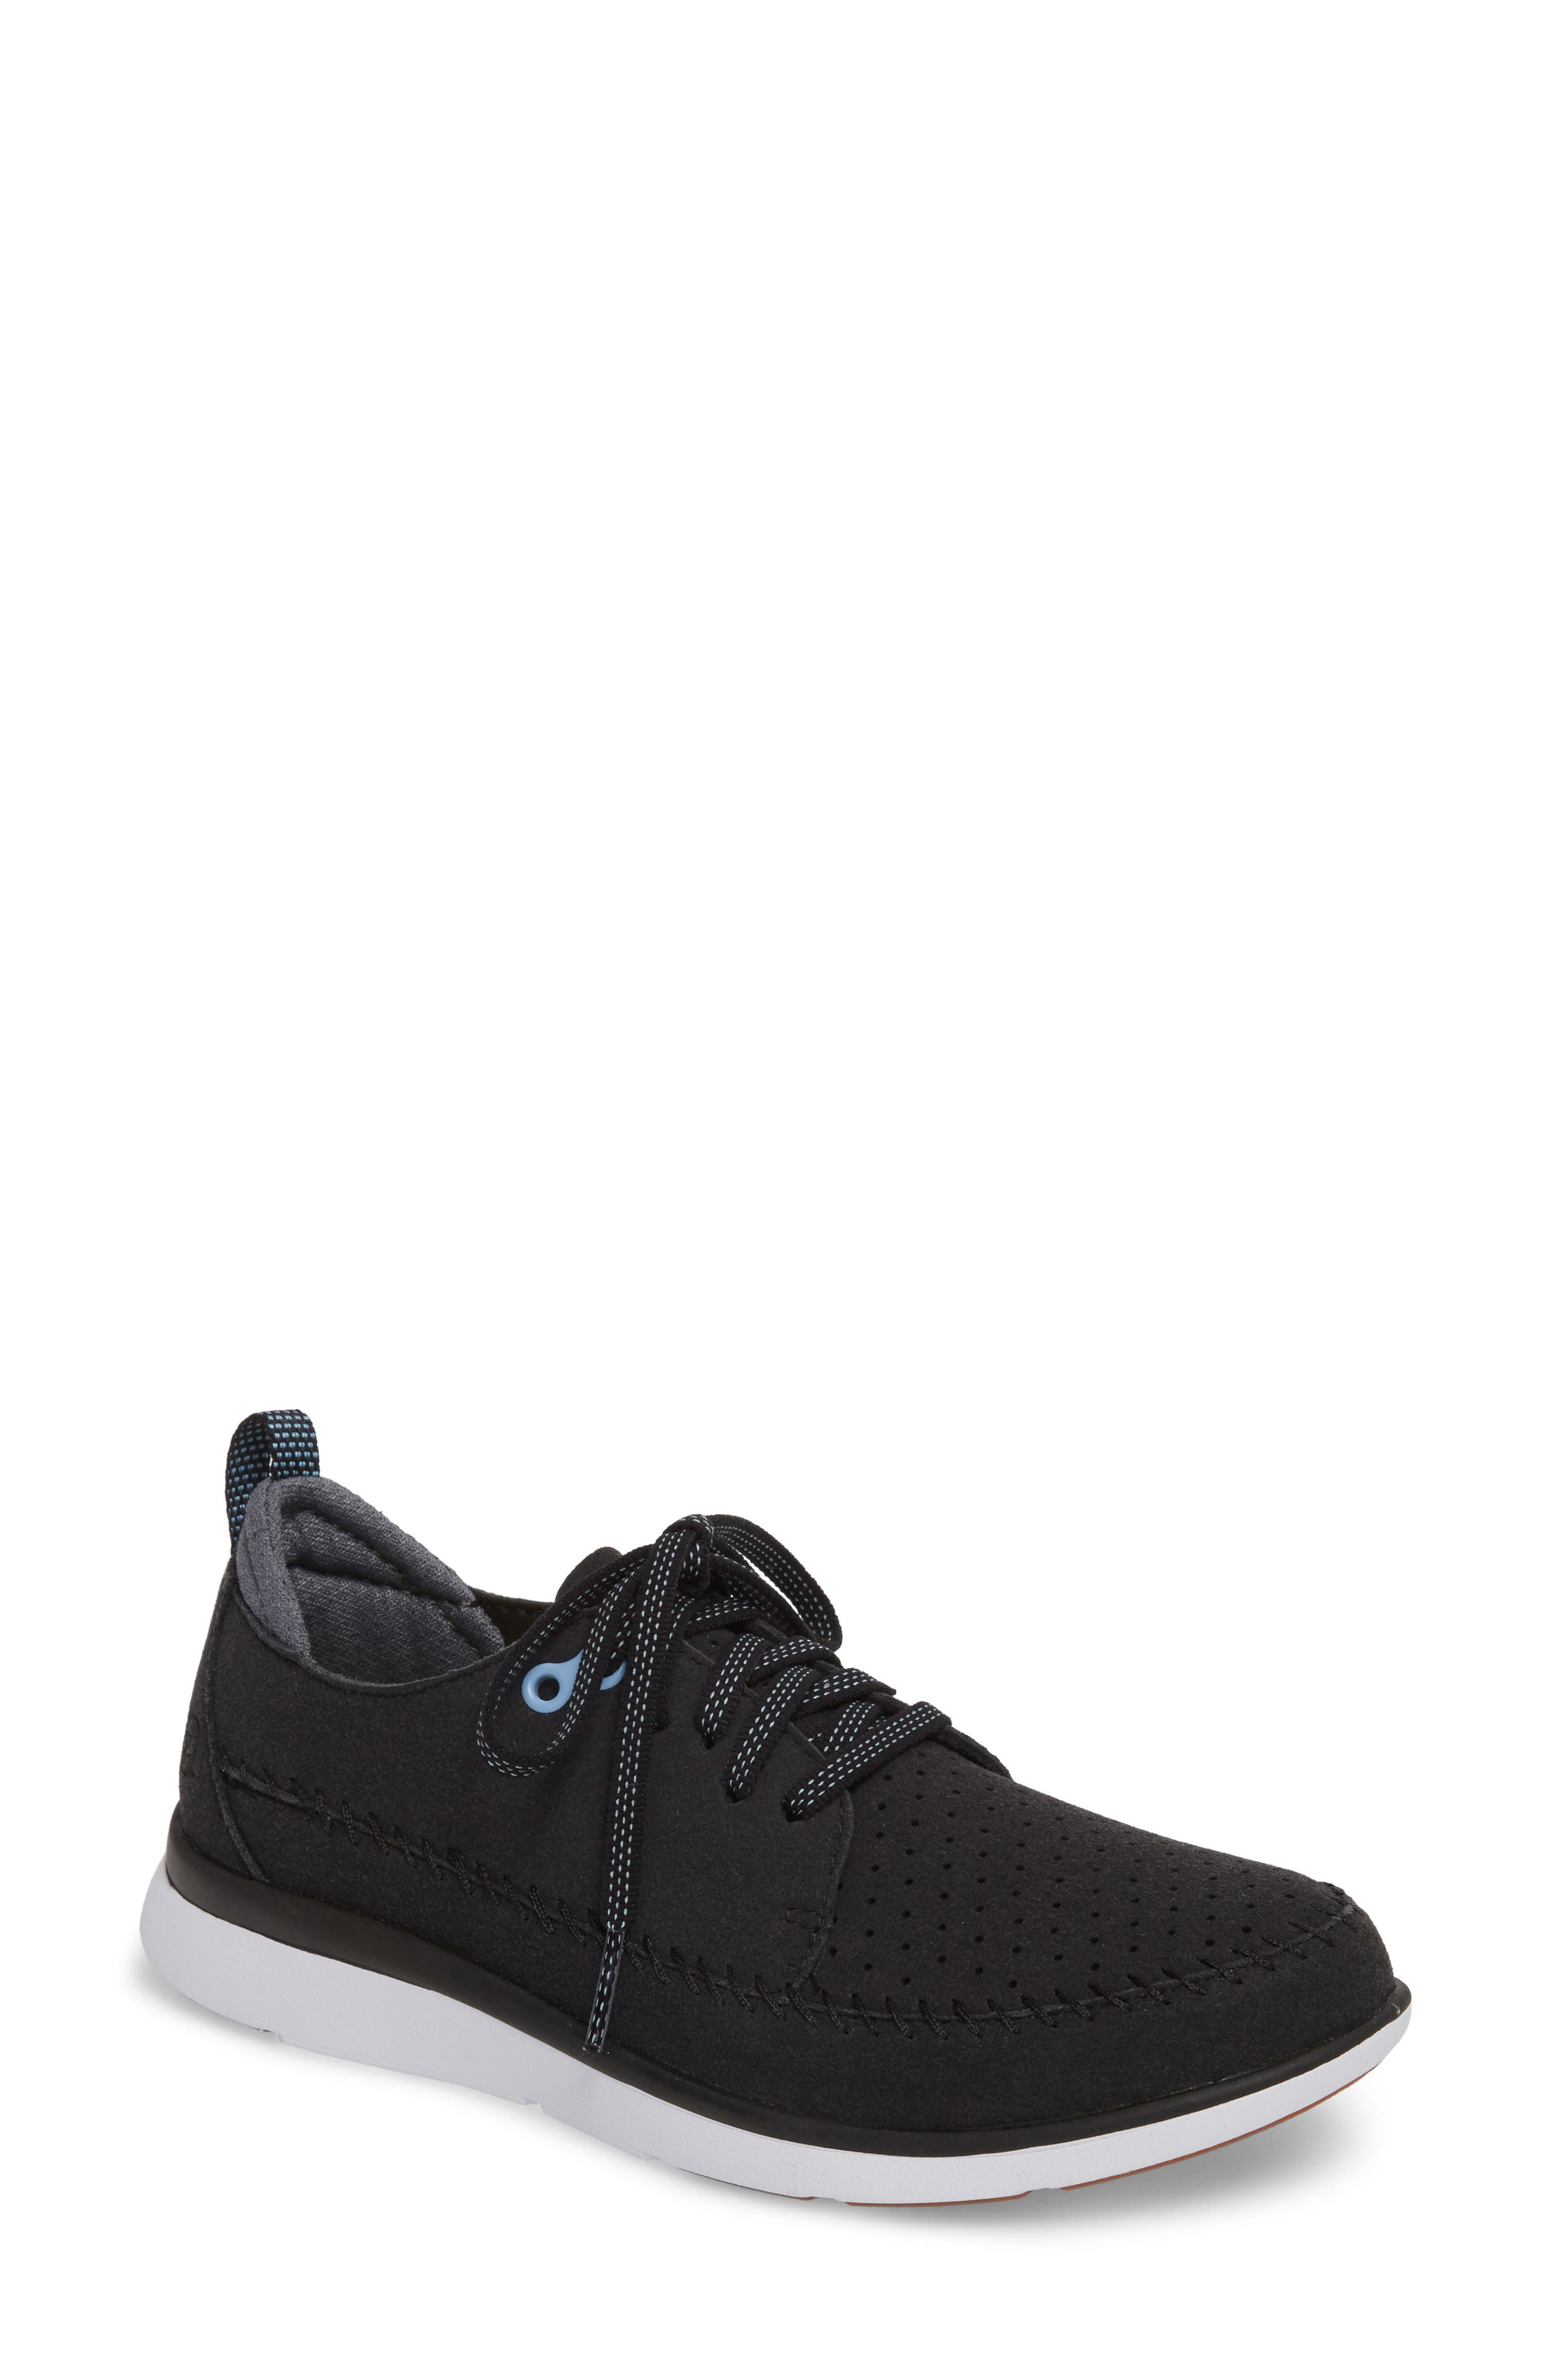 Addy Sneaker,                             Main thumbnail 1, color,                             BLACK FABRIC